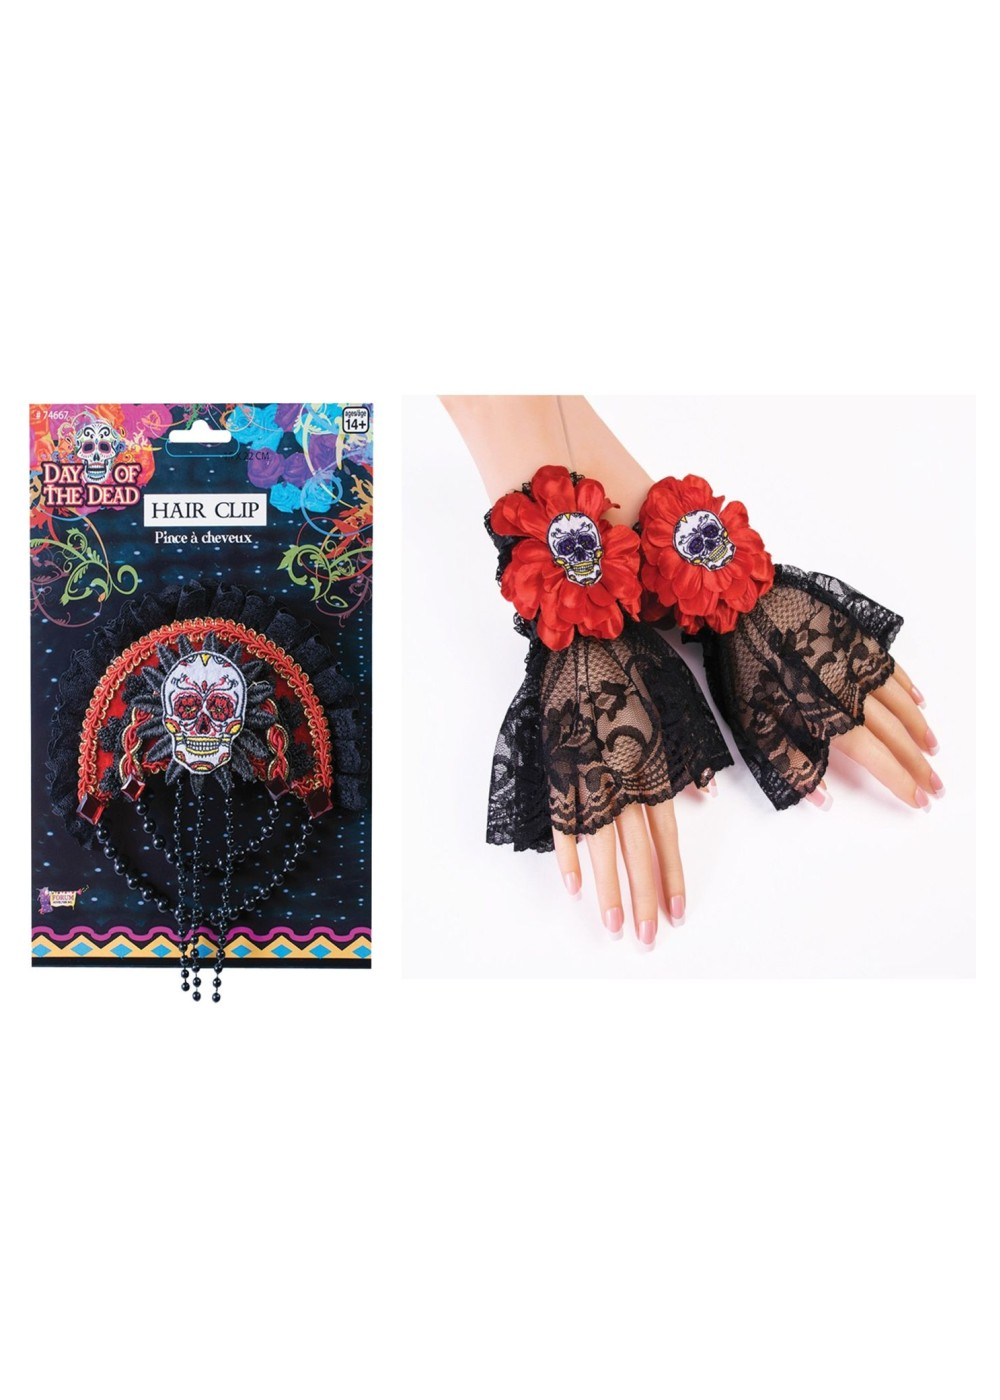 Ranger For Sale >> Day of the Dead Wrist Cuffs and Hair Clip Set - Accessories